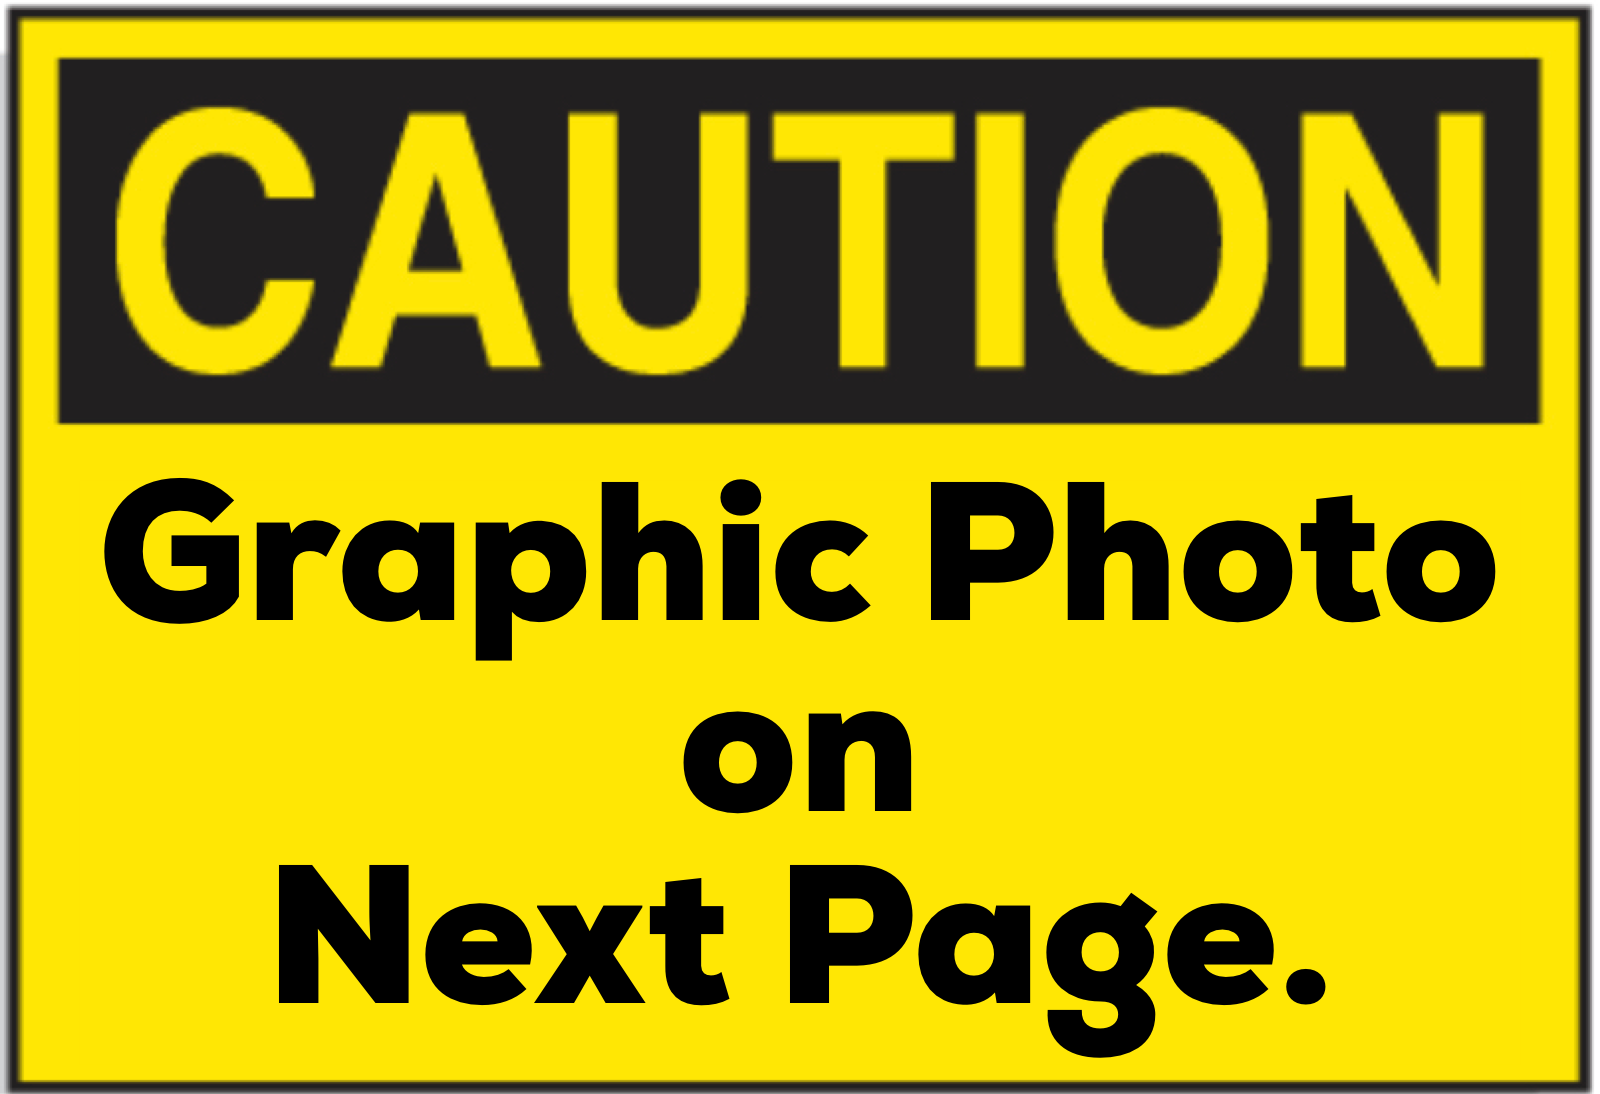 Caution, graphic photo image next page